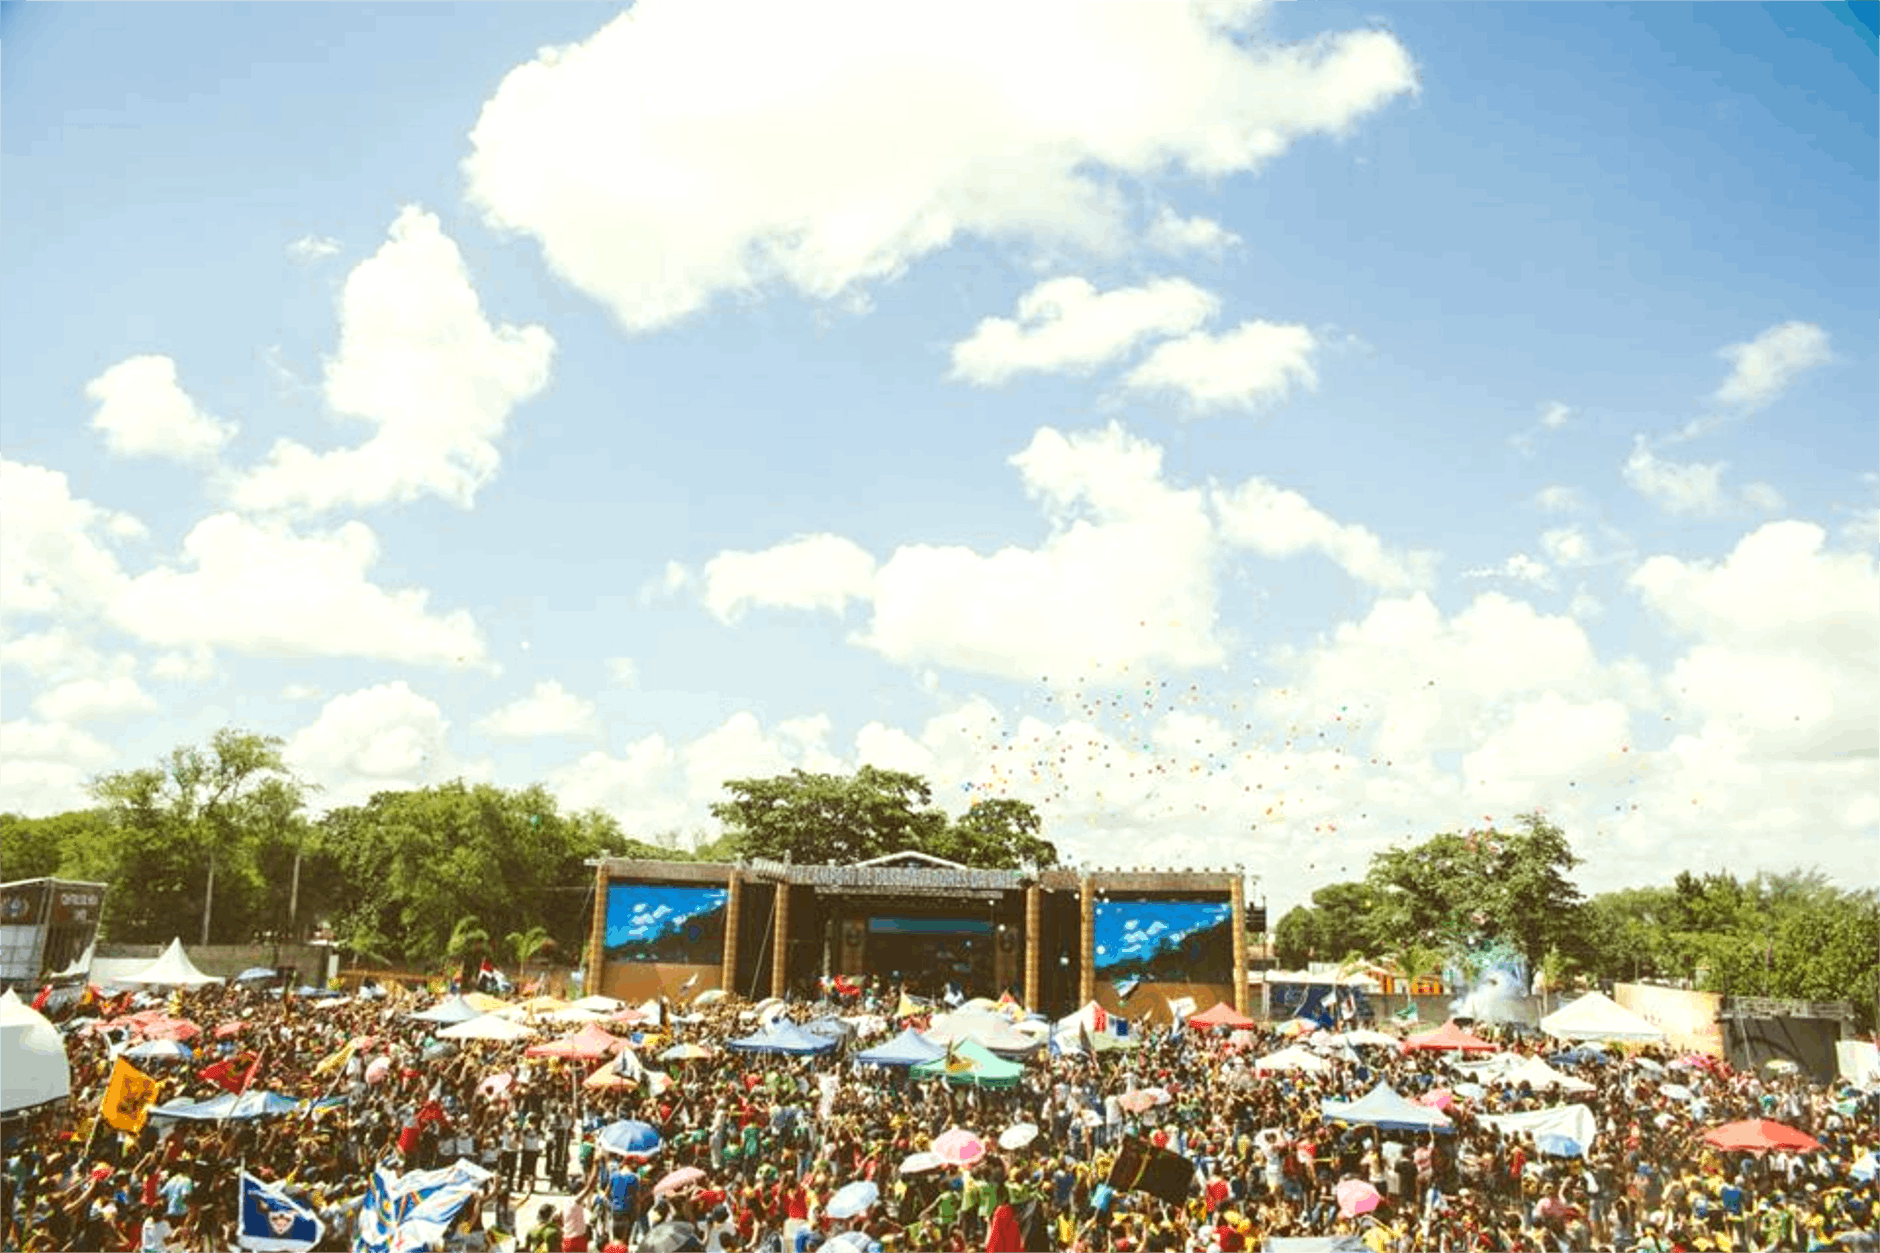 A concert stage on a huge field filled with thousands of people